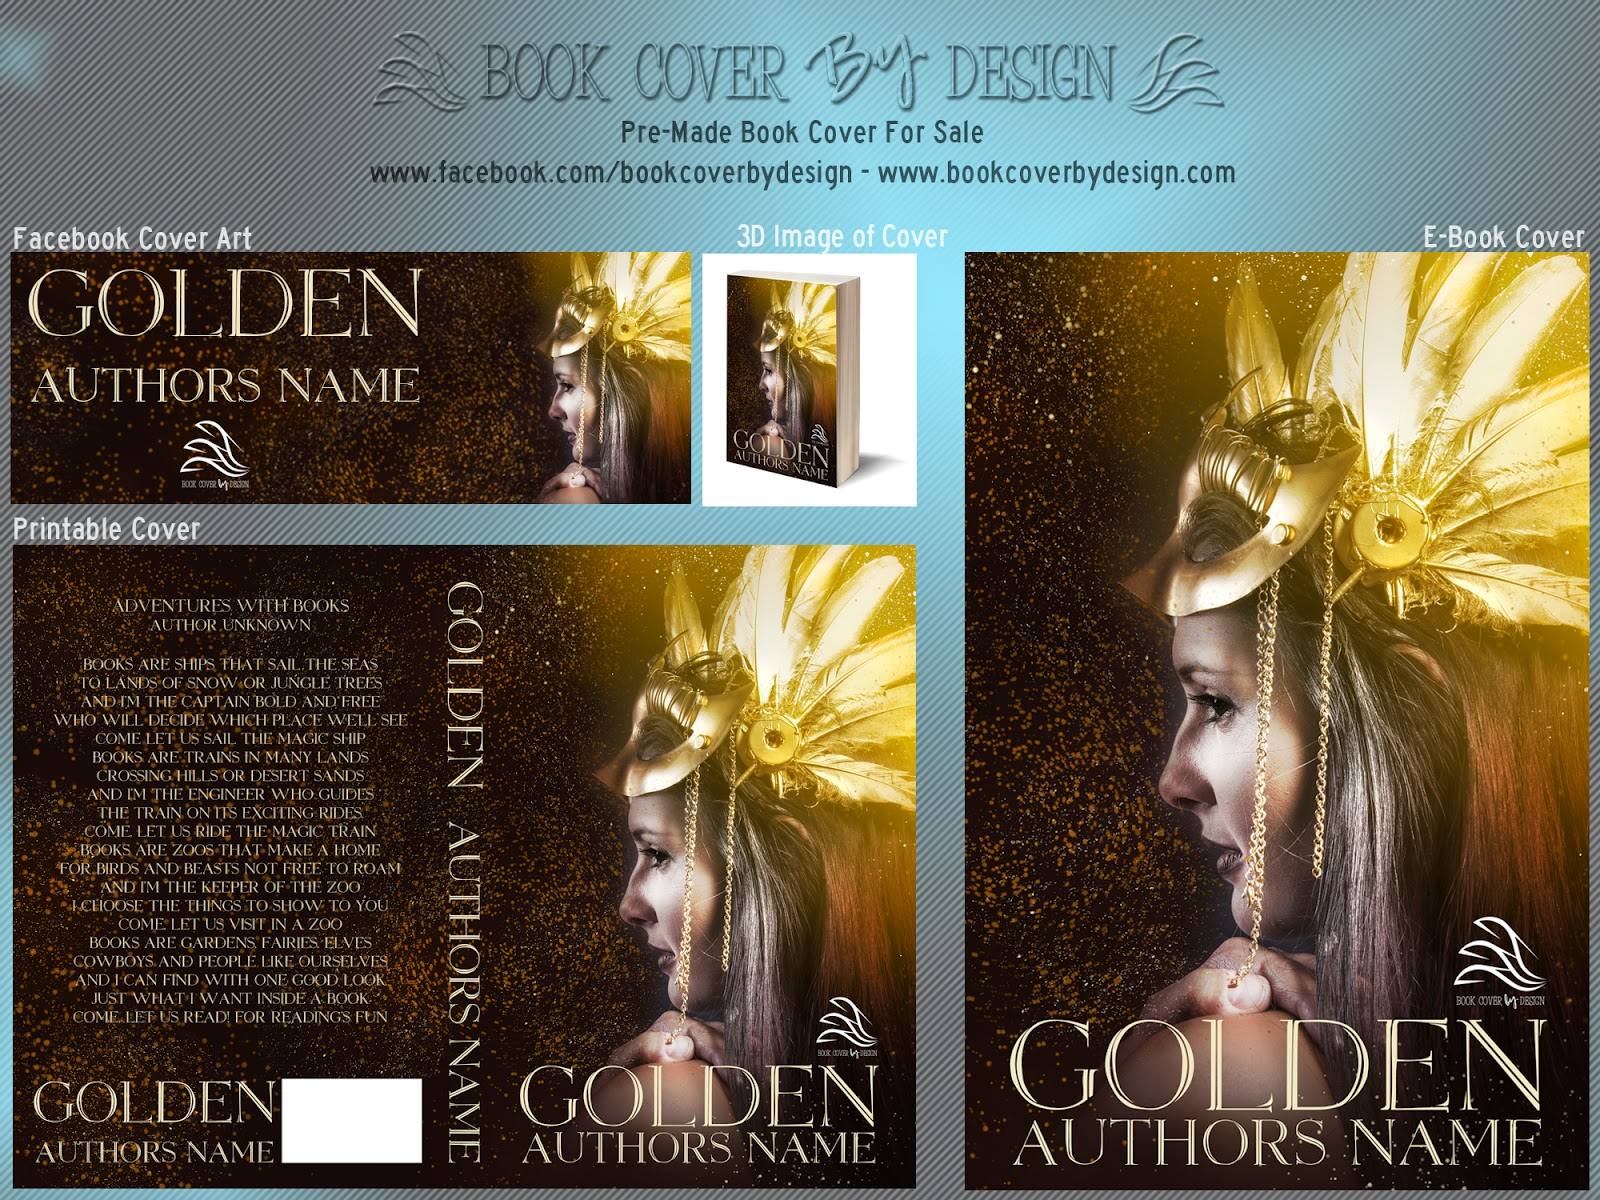 Book Cover Forros For Sale ~ Book cover by design pre made covers for sale